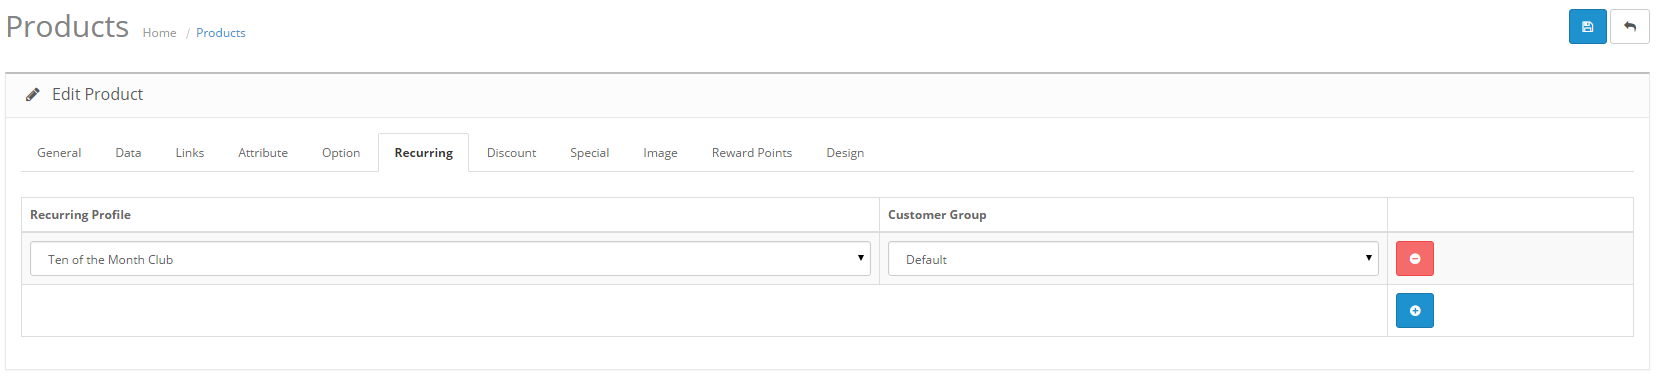 Applying Profile to Product